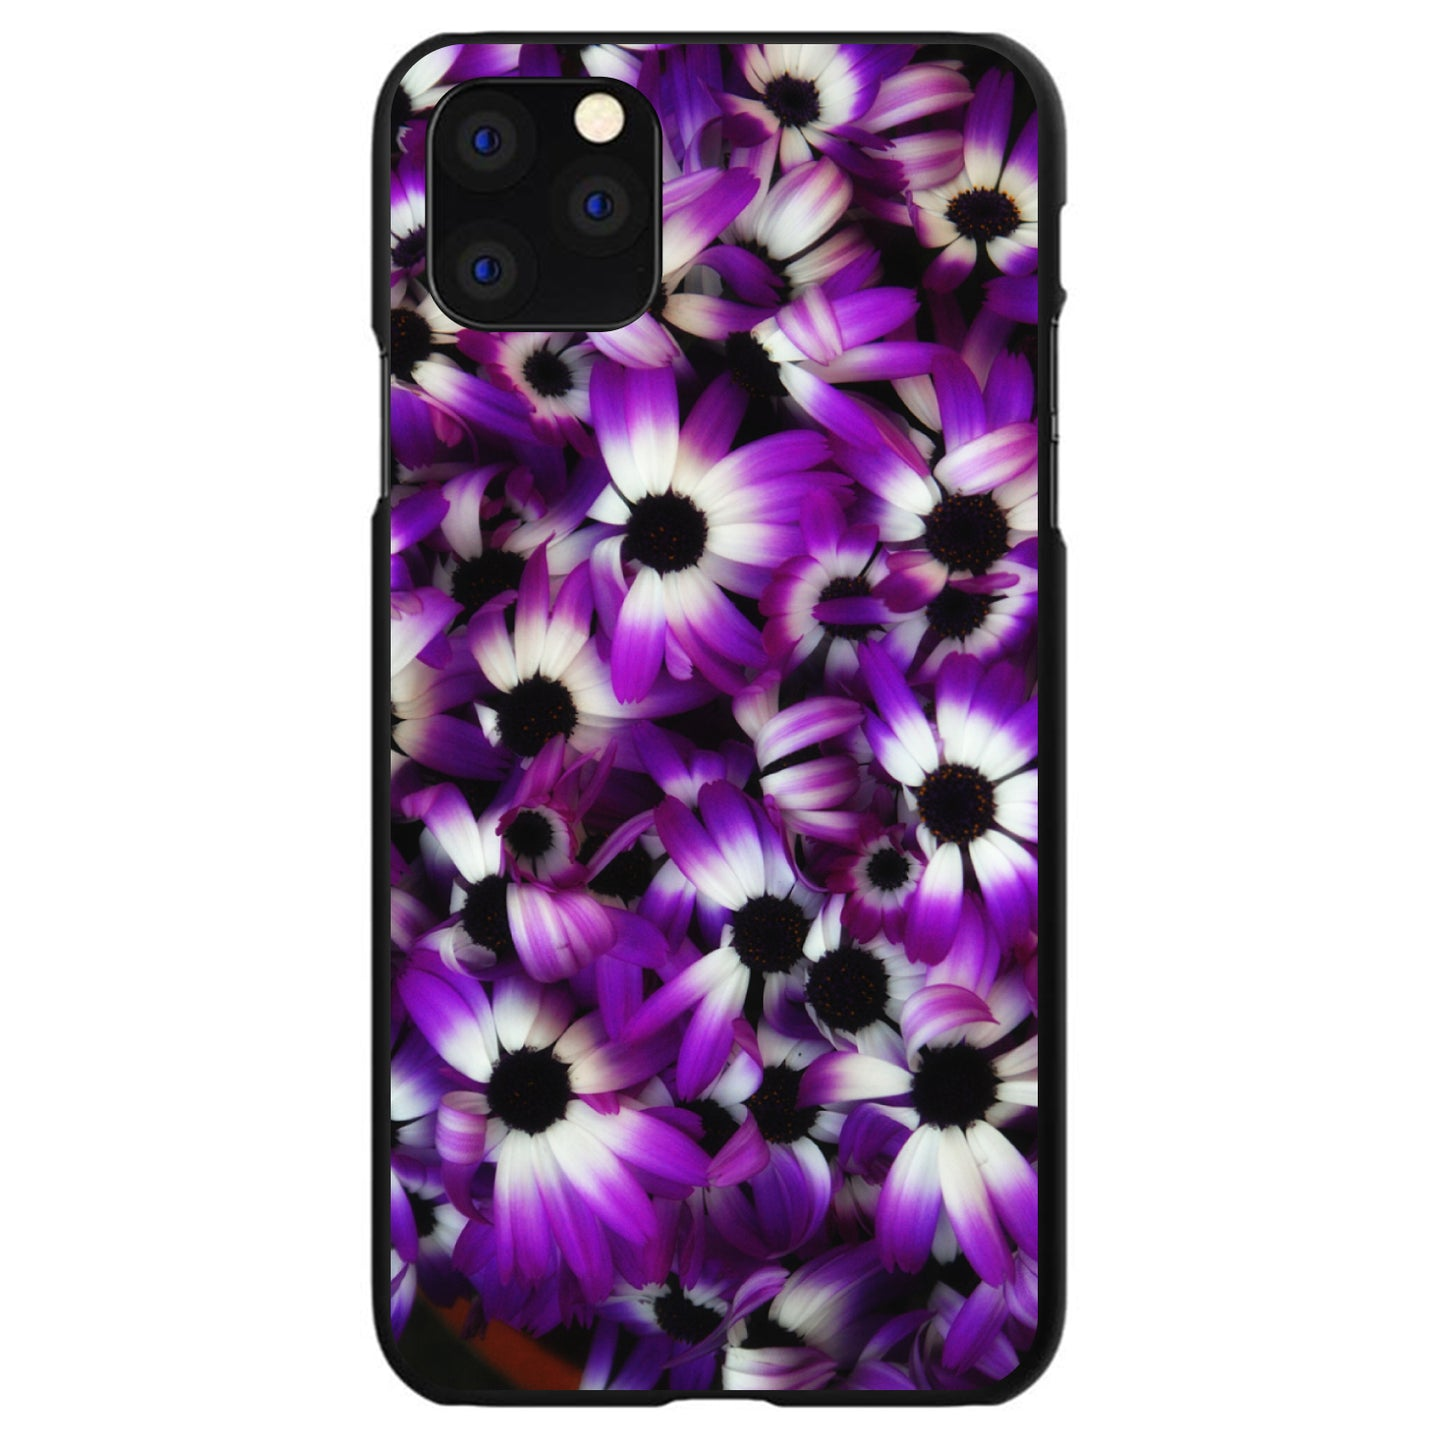 DistinctInk® Hard Plastic Snap-On Case for Apple iPhone - Purple White Black Flowers